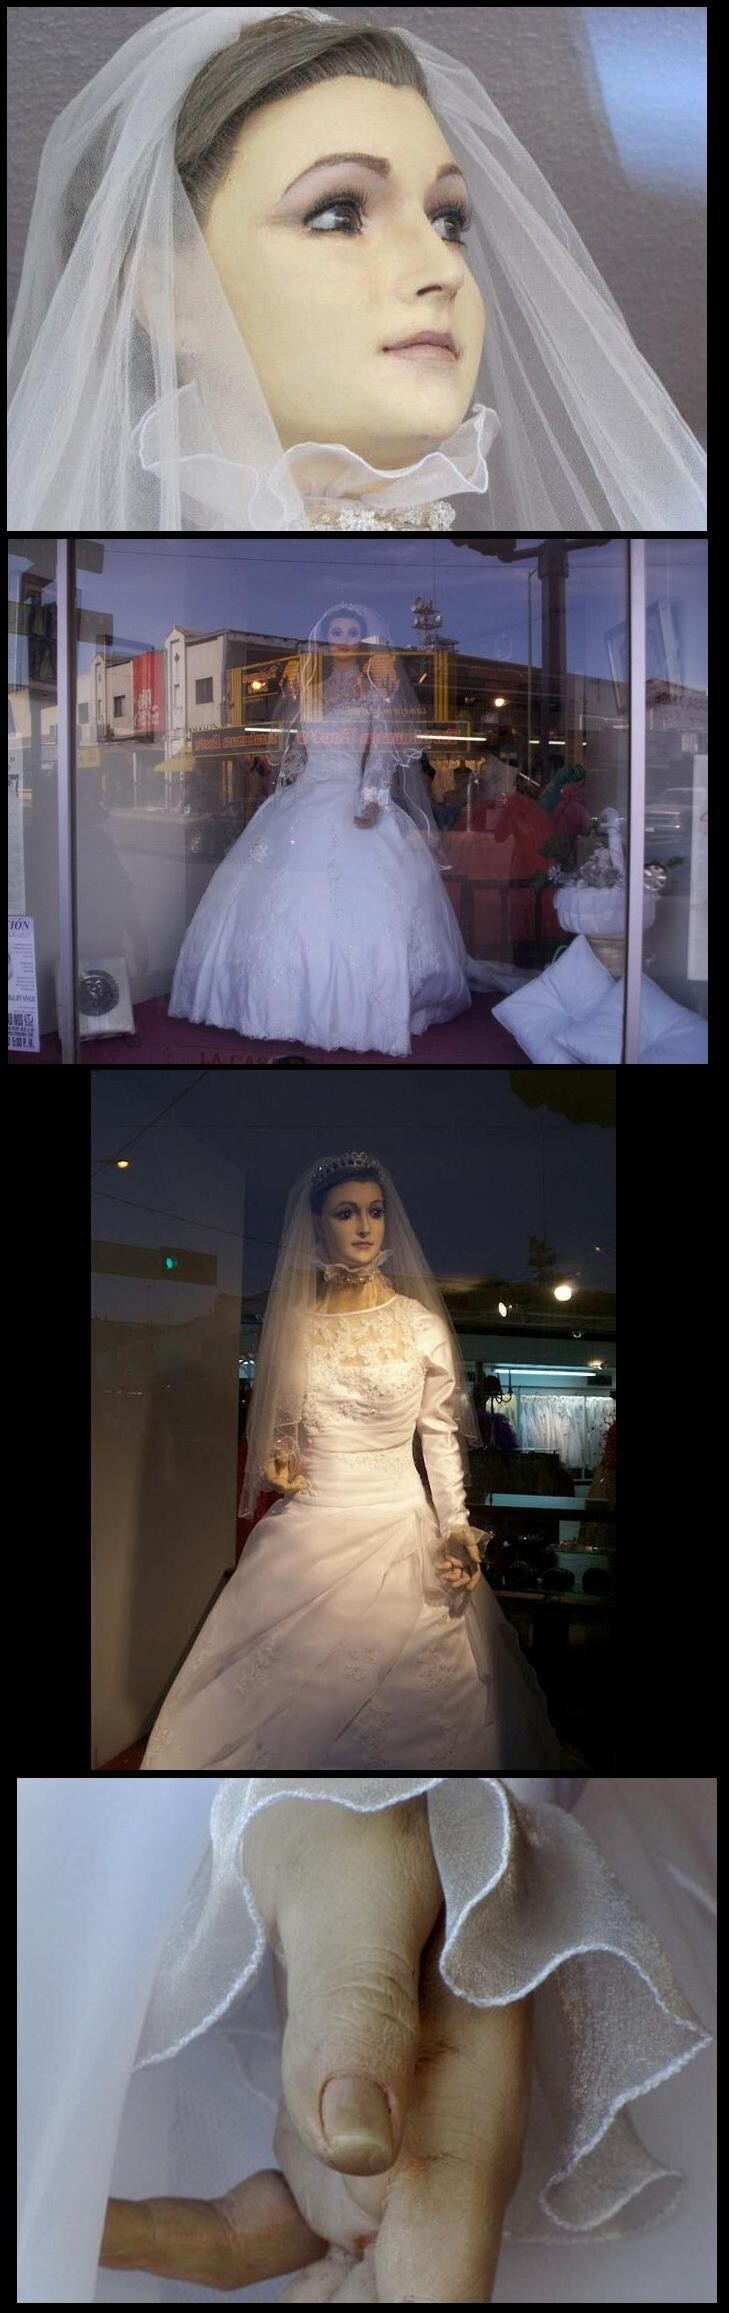 The Creepiest Mannequin Ever Lives in a Bridal Shop